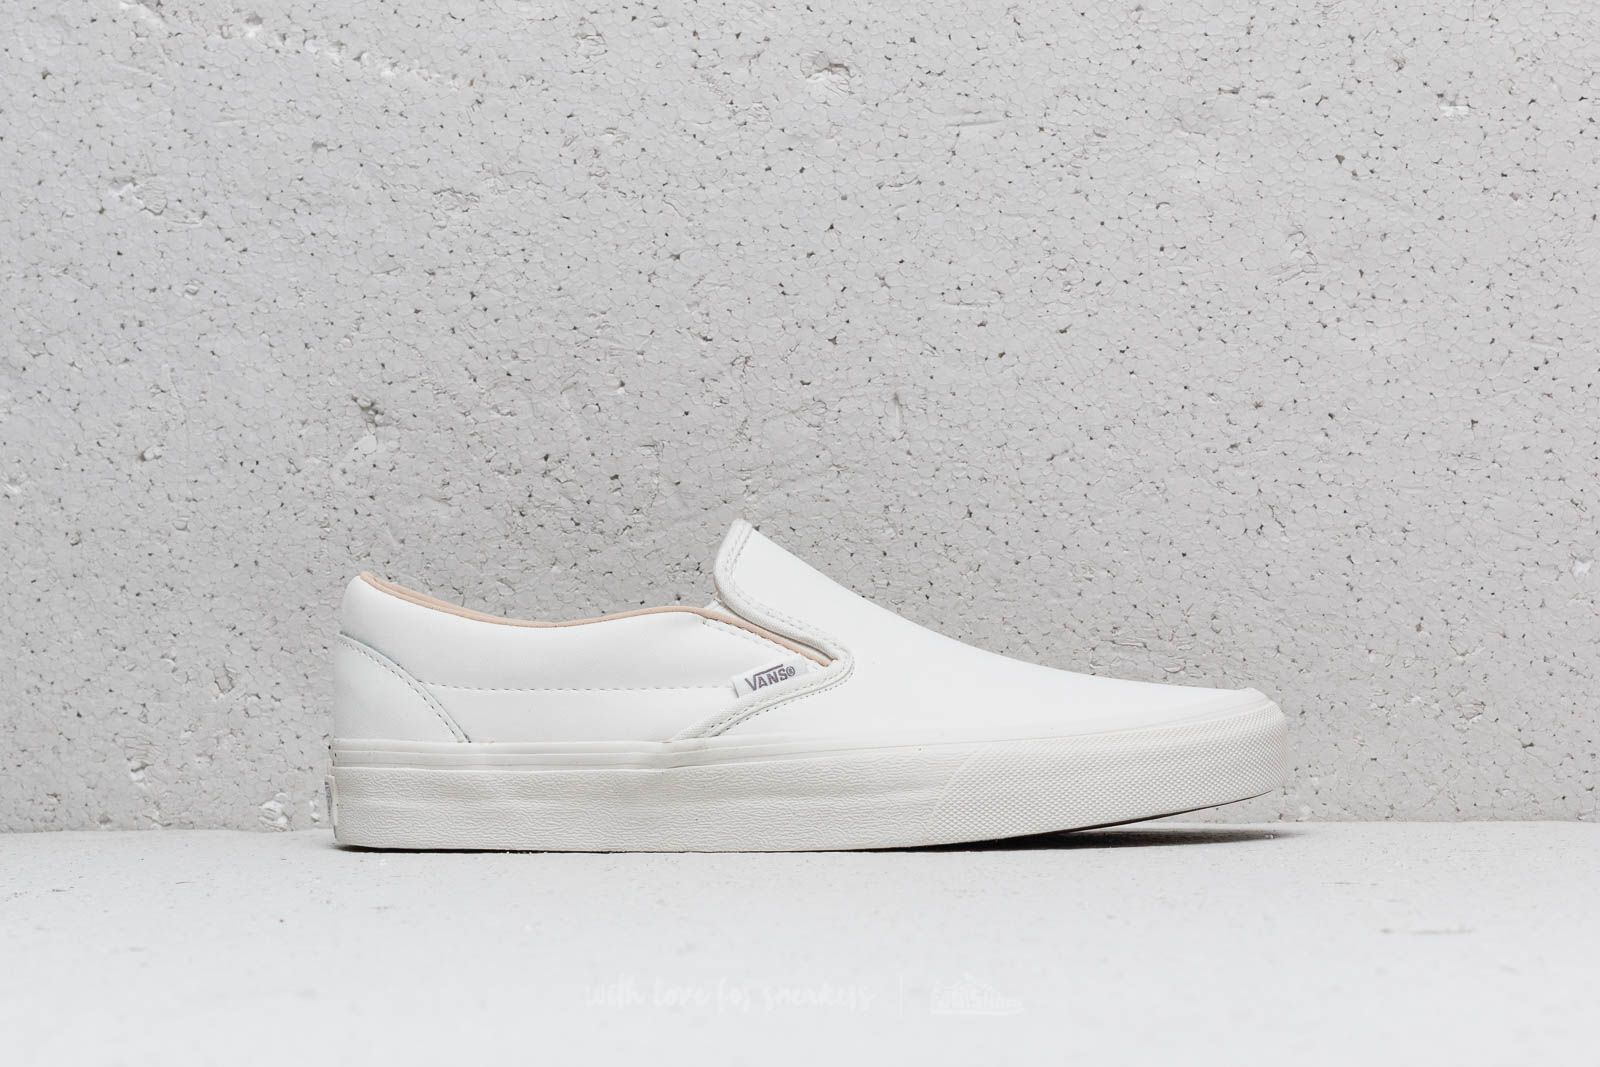 900dcdca9b83c5 Vans Classic Slip-On (Vansbuck) Blanc de Blanc at a great price 81